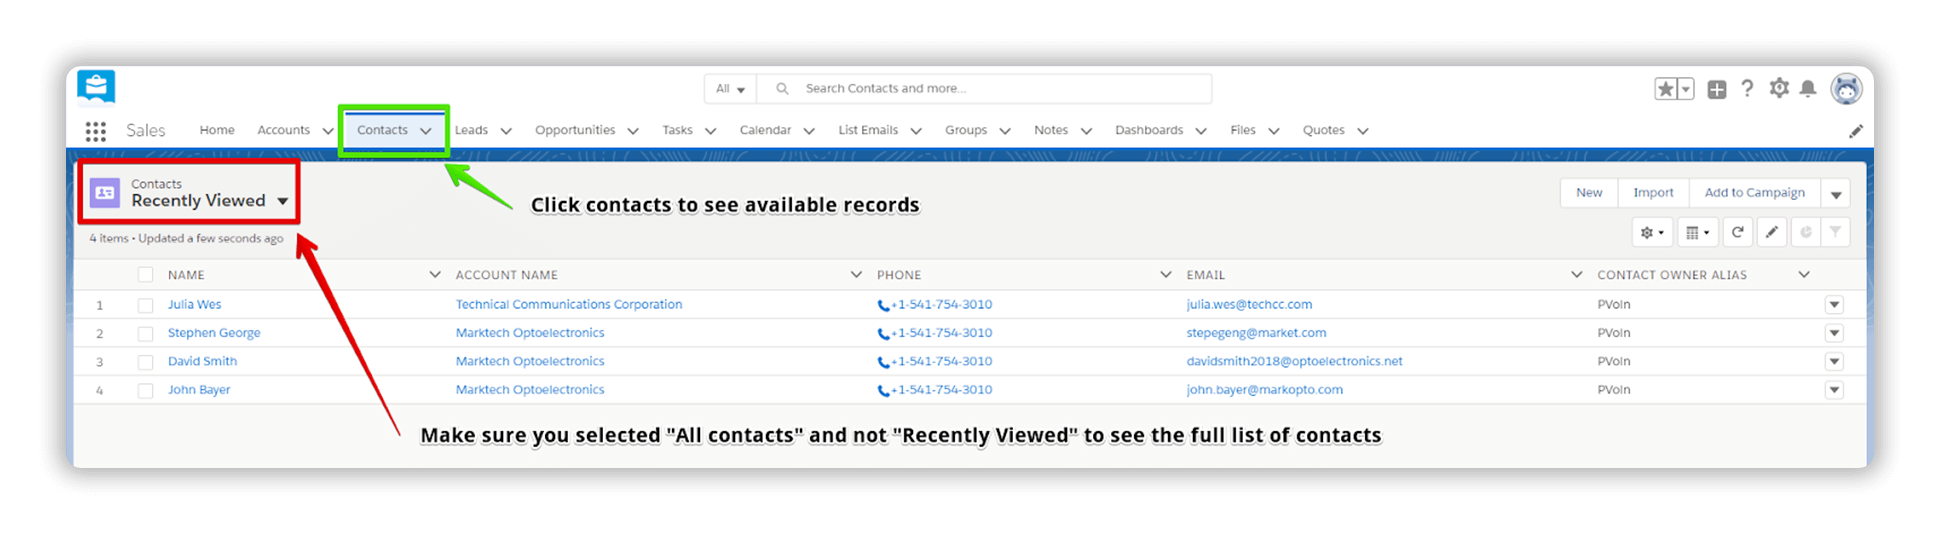 Click Contacts to See Your Available List of Contacts to Send Mass Email Salesforce